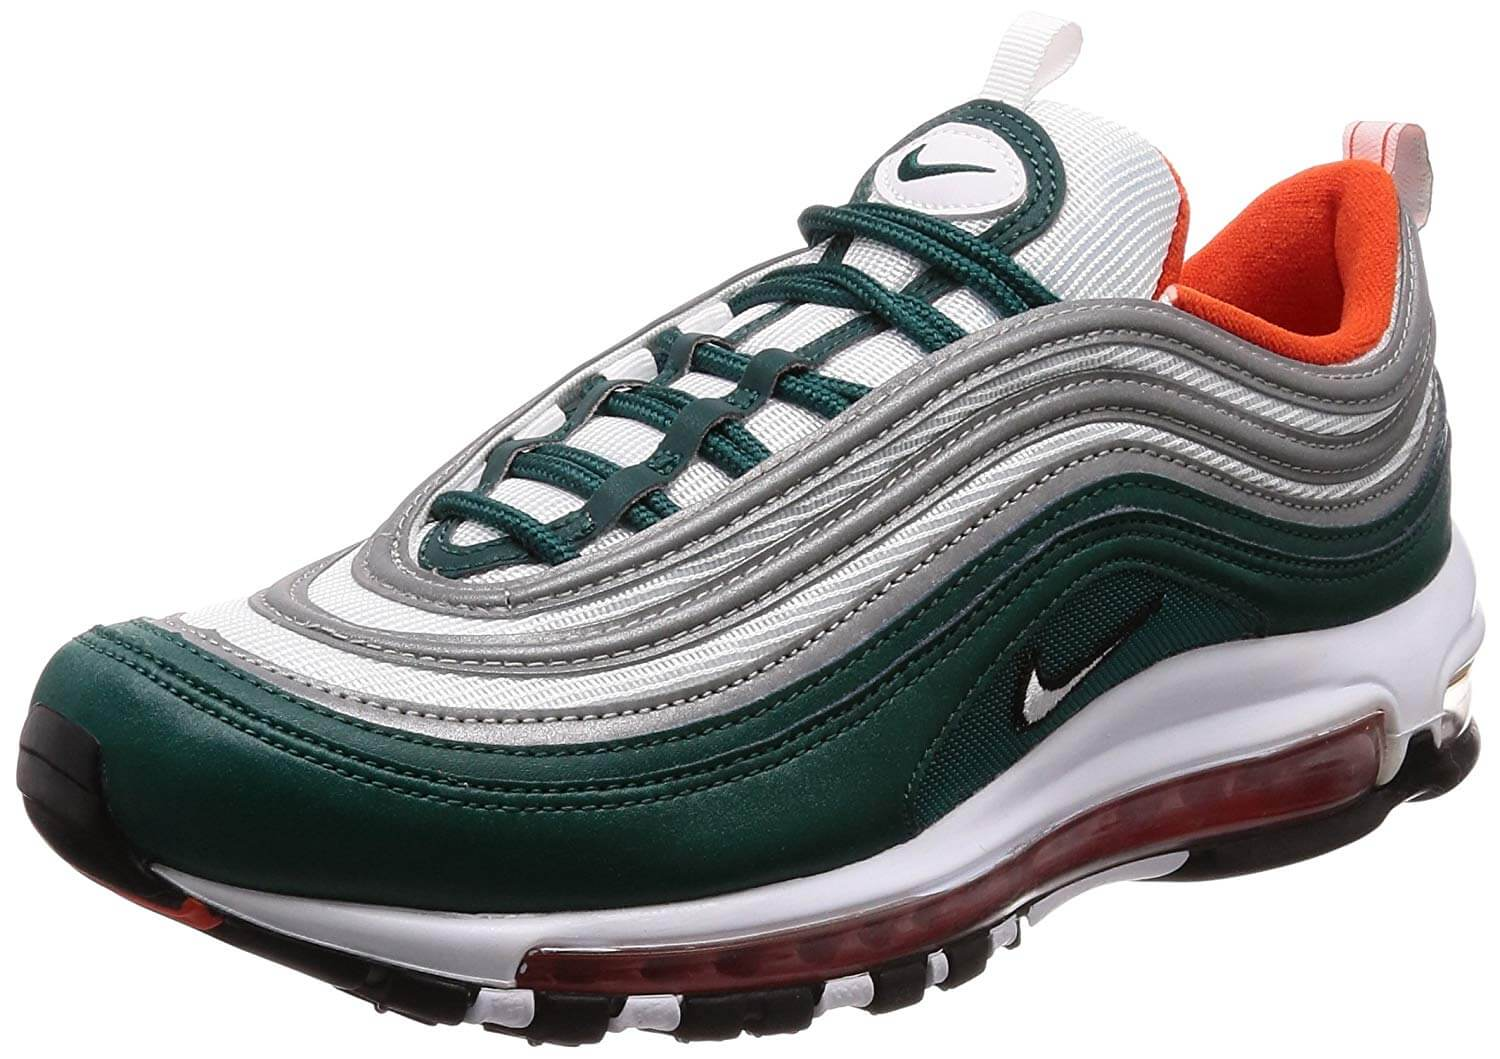 e5bddb4028a0d Nike Air Max 97 Reviewed - To Buy or Not in May 2019  nike air